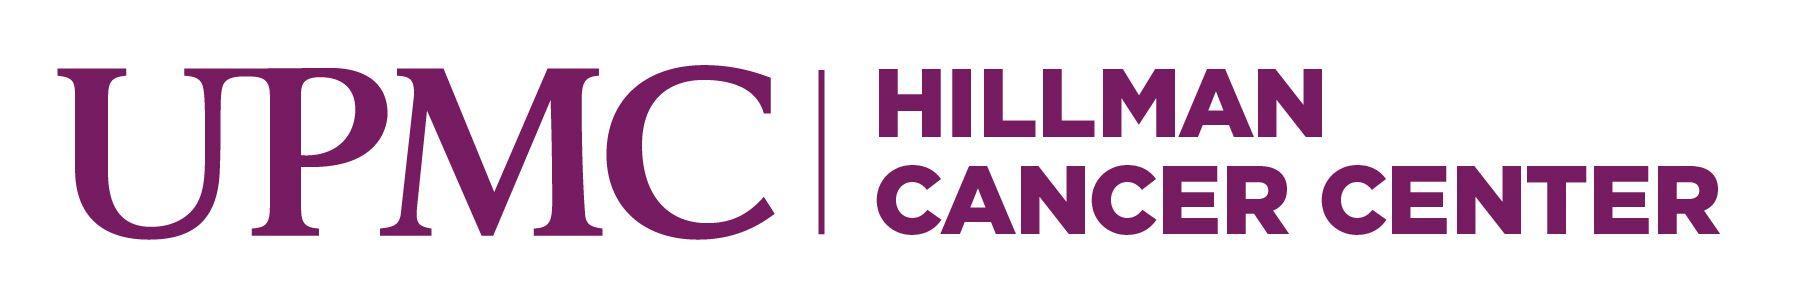 Partner | Cancer Centers | <b>UPMC Hillman Cancer Center</b>